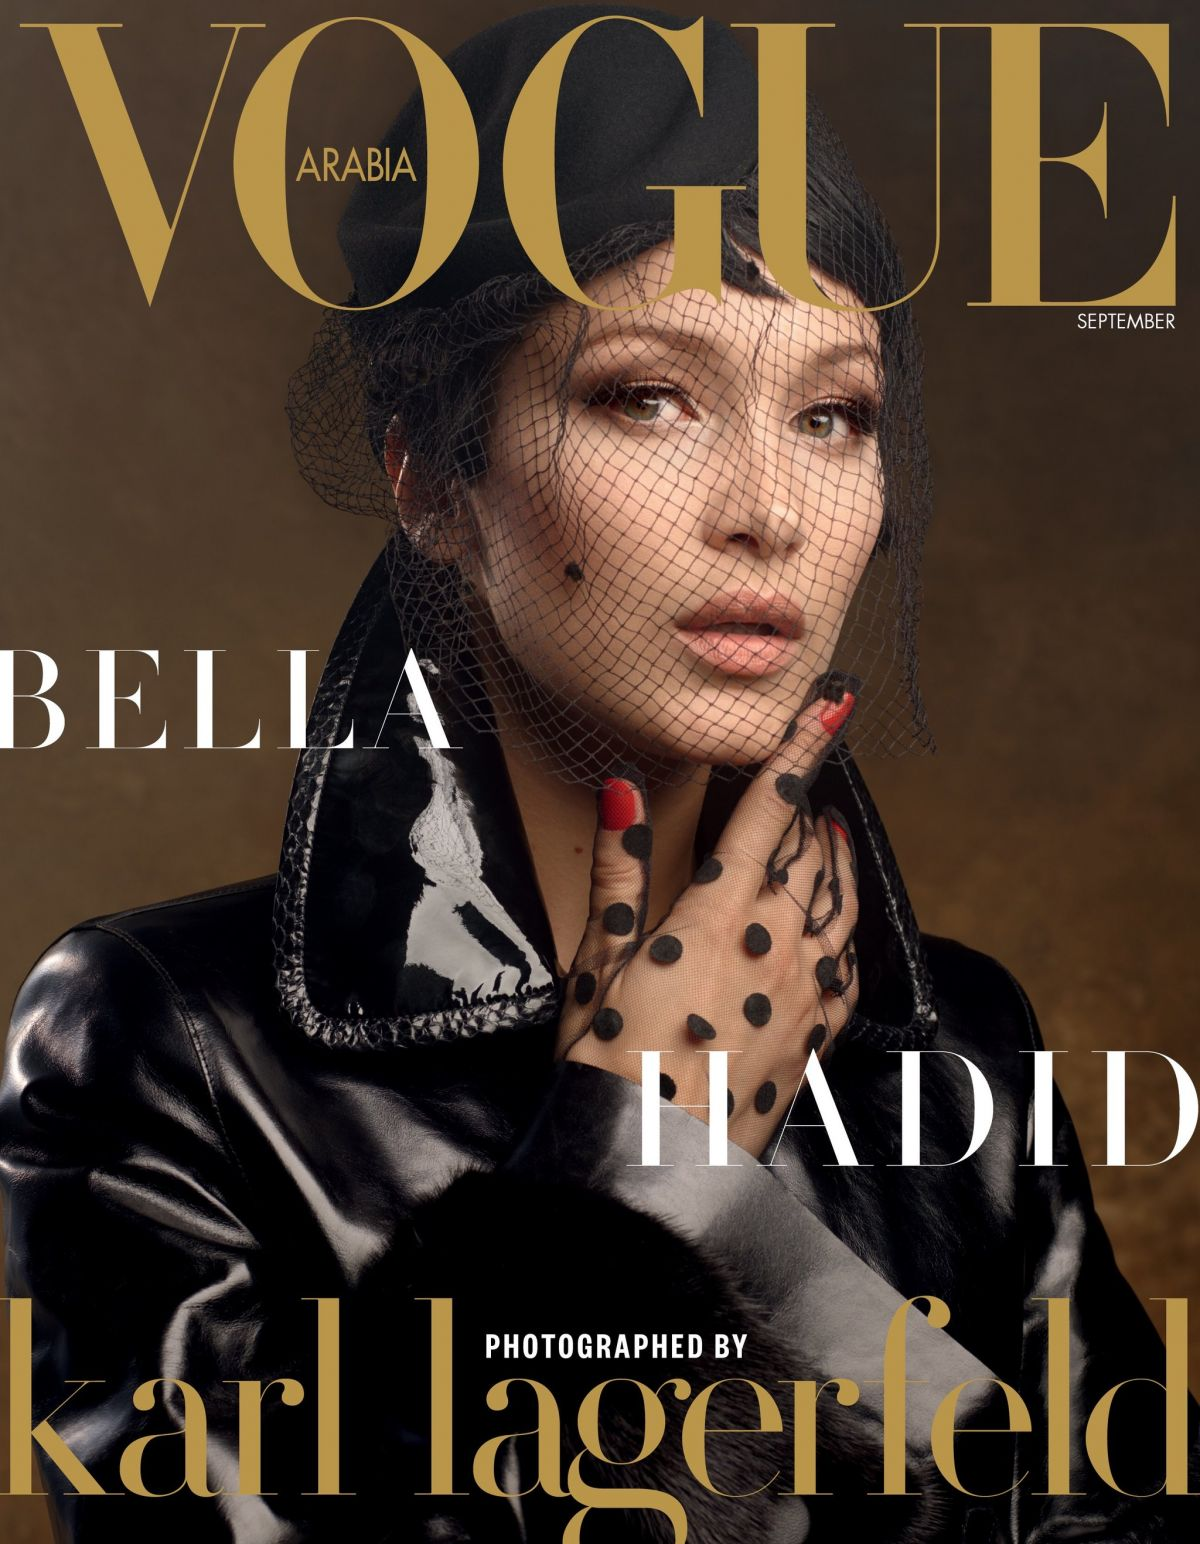 BELLA HADID for Vogue Magazine, Arabia september 2017 Issue